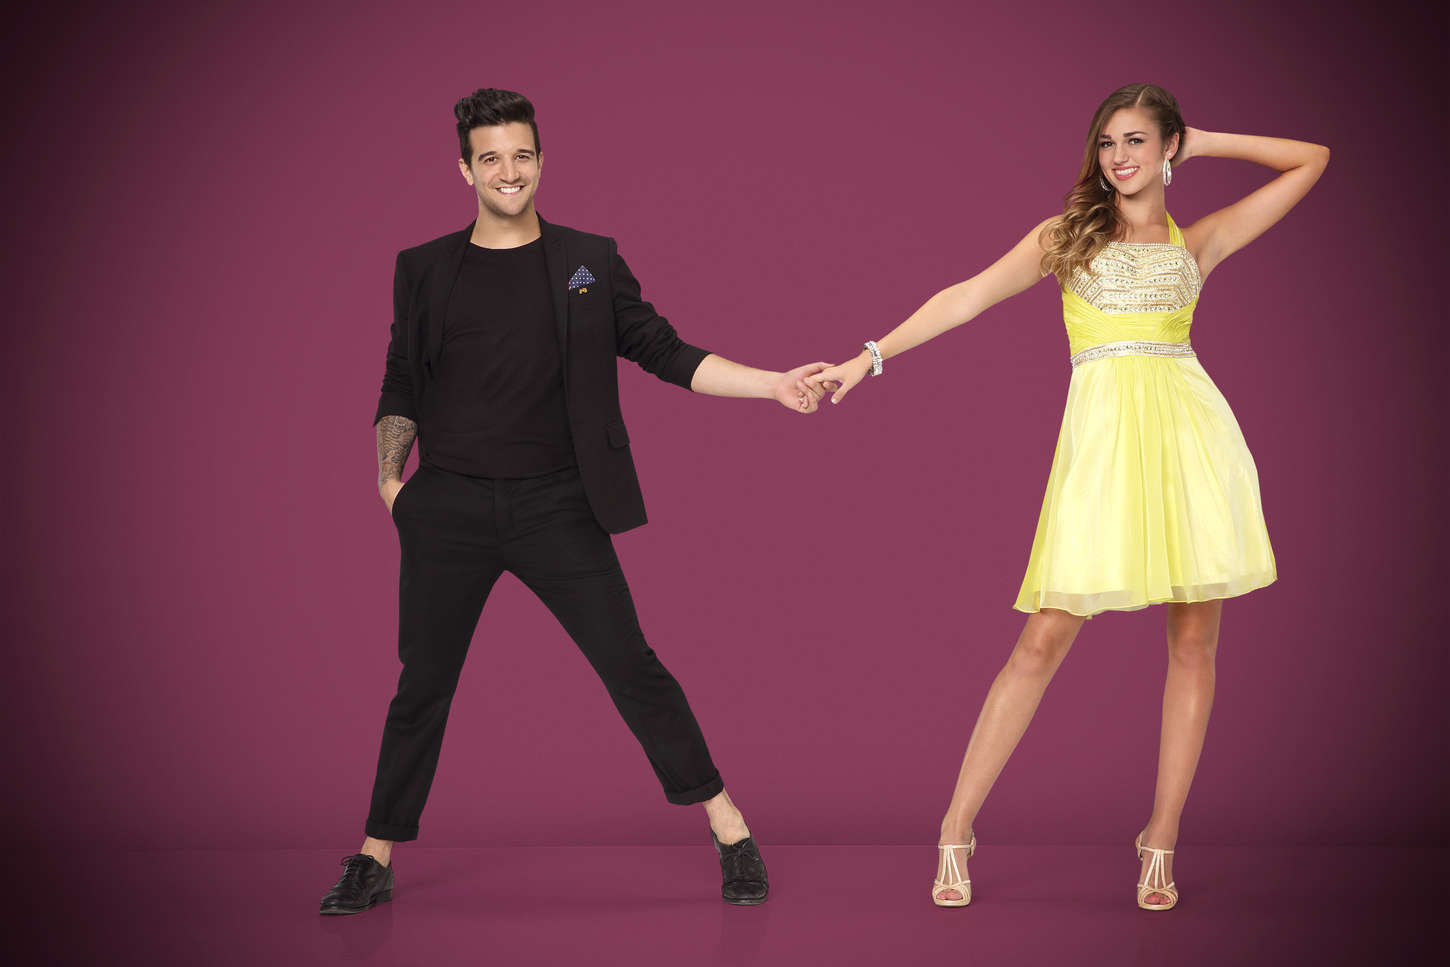 Sadie Robertson Dancing With the Stars Promos Season